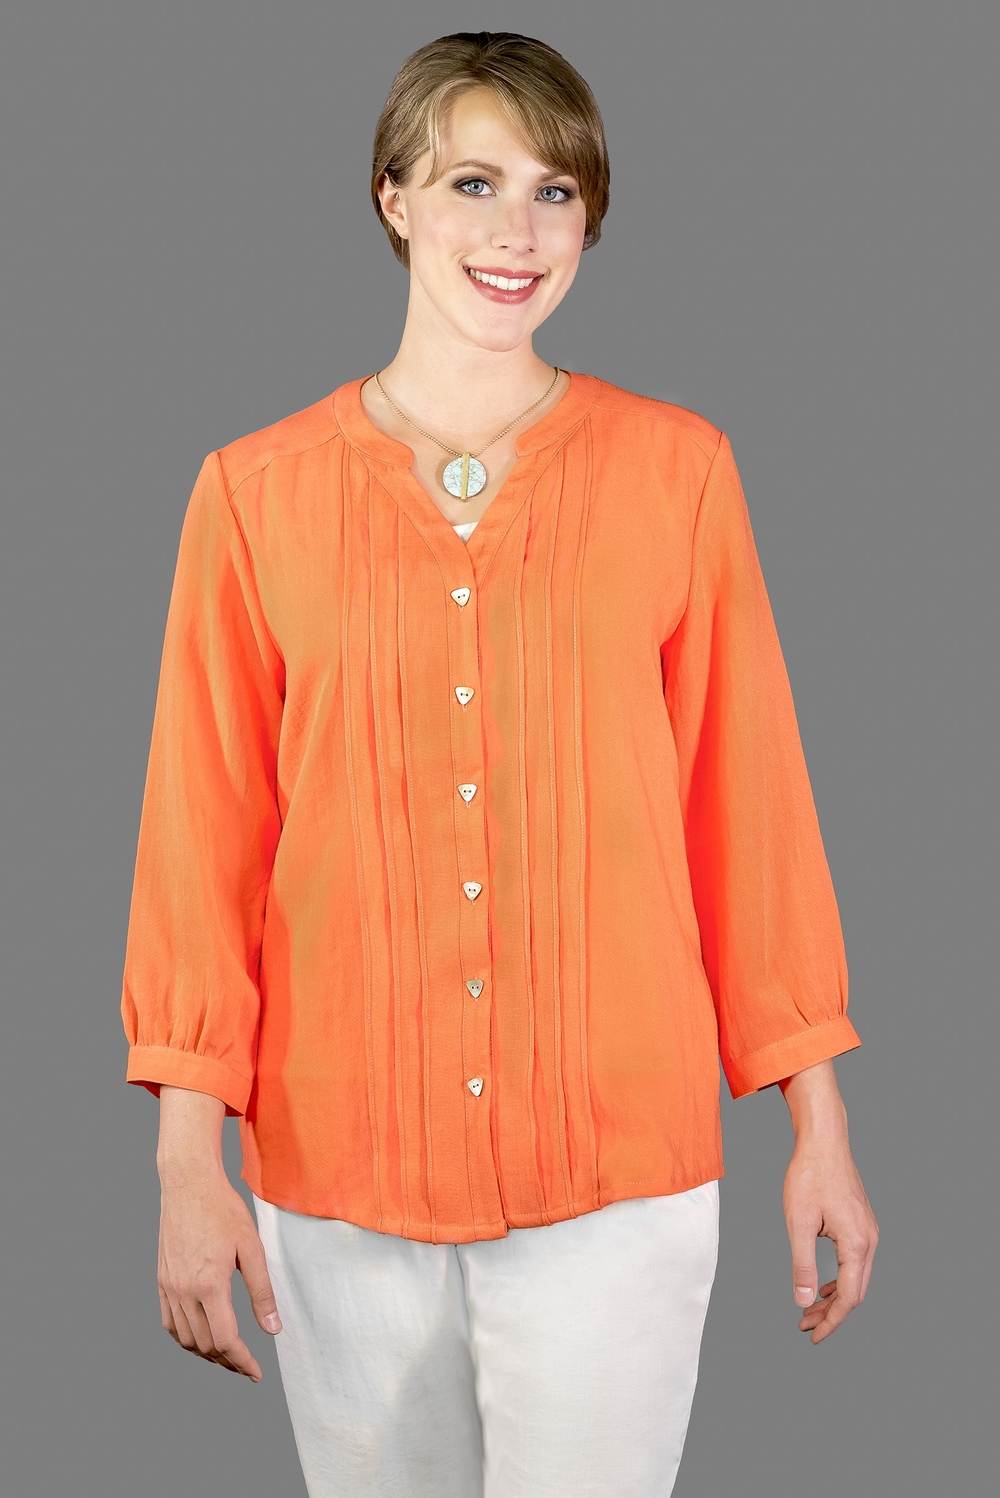 AA173 - Layered Pleats Top    CL3979 - Tangerine